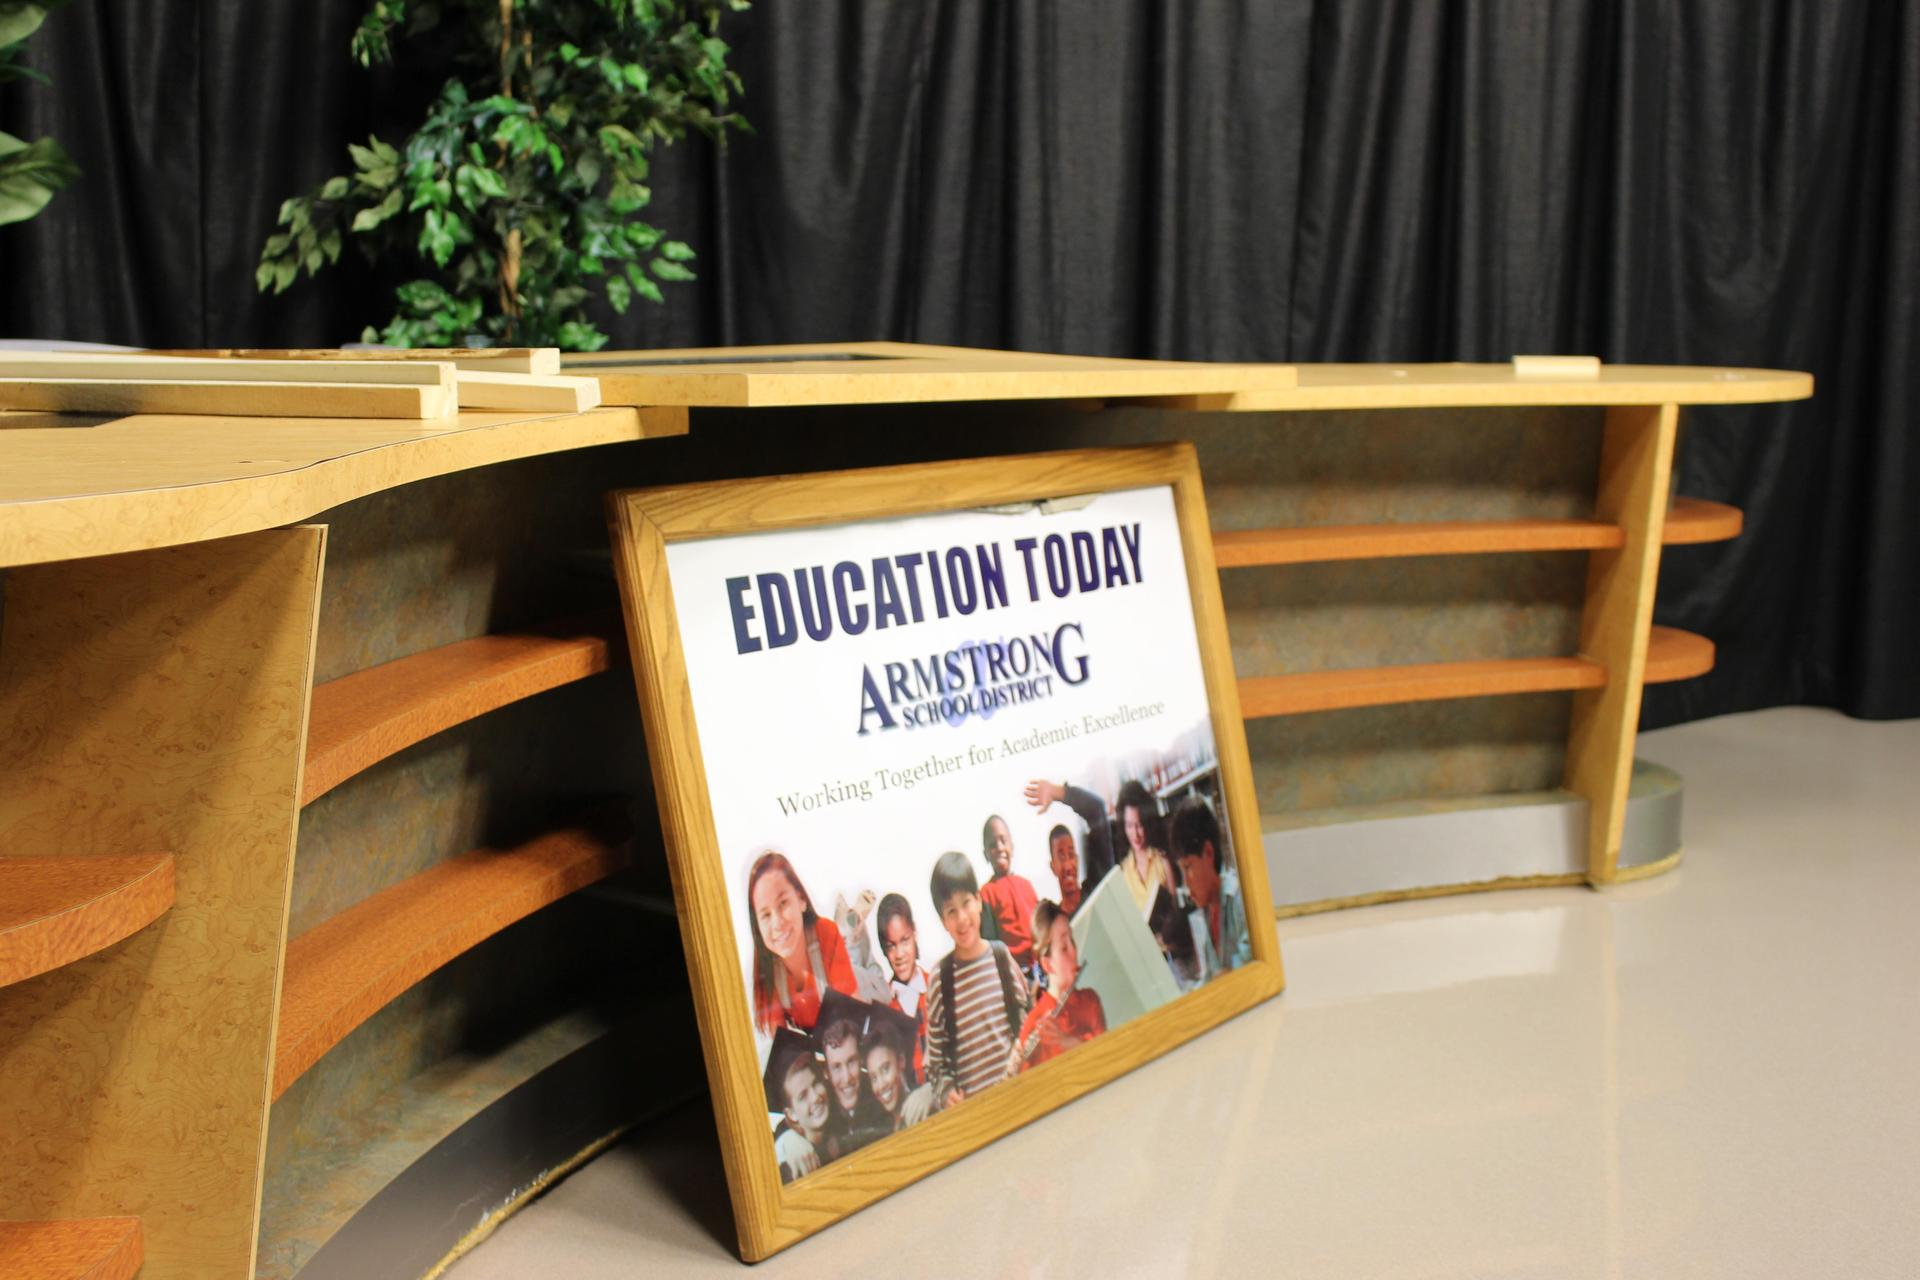 The news desk and set of Education Today